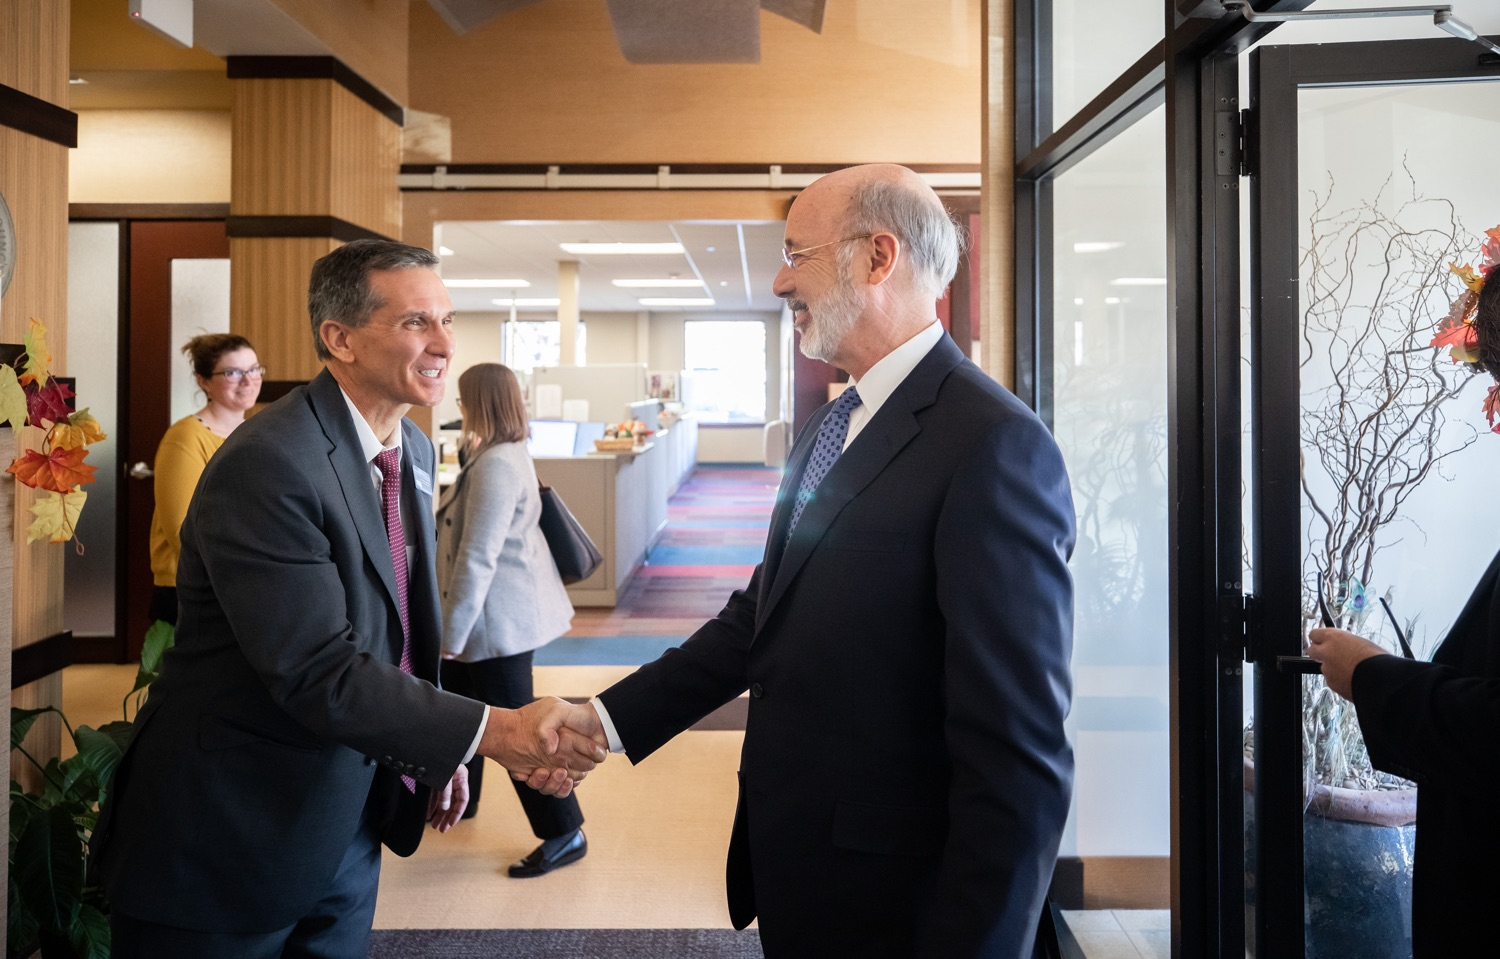 "<a href=""http://filesource.abacast.com/commonwealthofpa/photo/17598_gov_charter_schools_dz_013.jpg"" target=""_blank"">⇣ Download Photo<br></a>Pennsylvania Governor Tom Wolf Greeting Dr. Mark DiRocco, Executive Director of the Pennsylvania Association of School Administrators. Governor Tom Wolfs commonsense plan to improve the educational quality of charter schools and control rising costs will save nearly $280 million a year, the governor told the Pennsylvania Association of School Administrators today. The governor has a three-part plan to fix Pennsylvanias charter school law which is regarded as one of the worst in the nation.  - Harrisburg, PA. Friday, November 15, 2019."